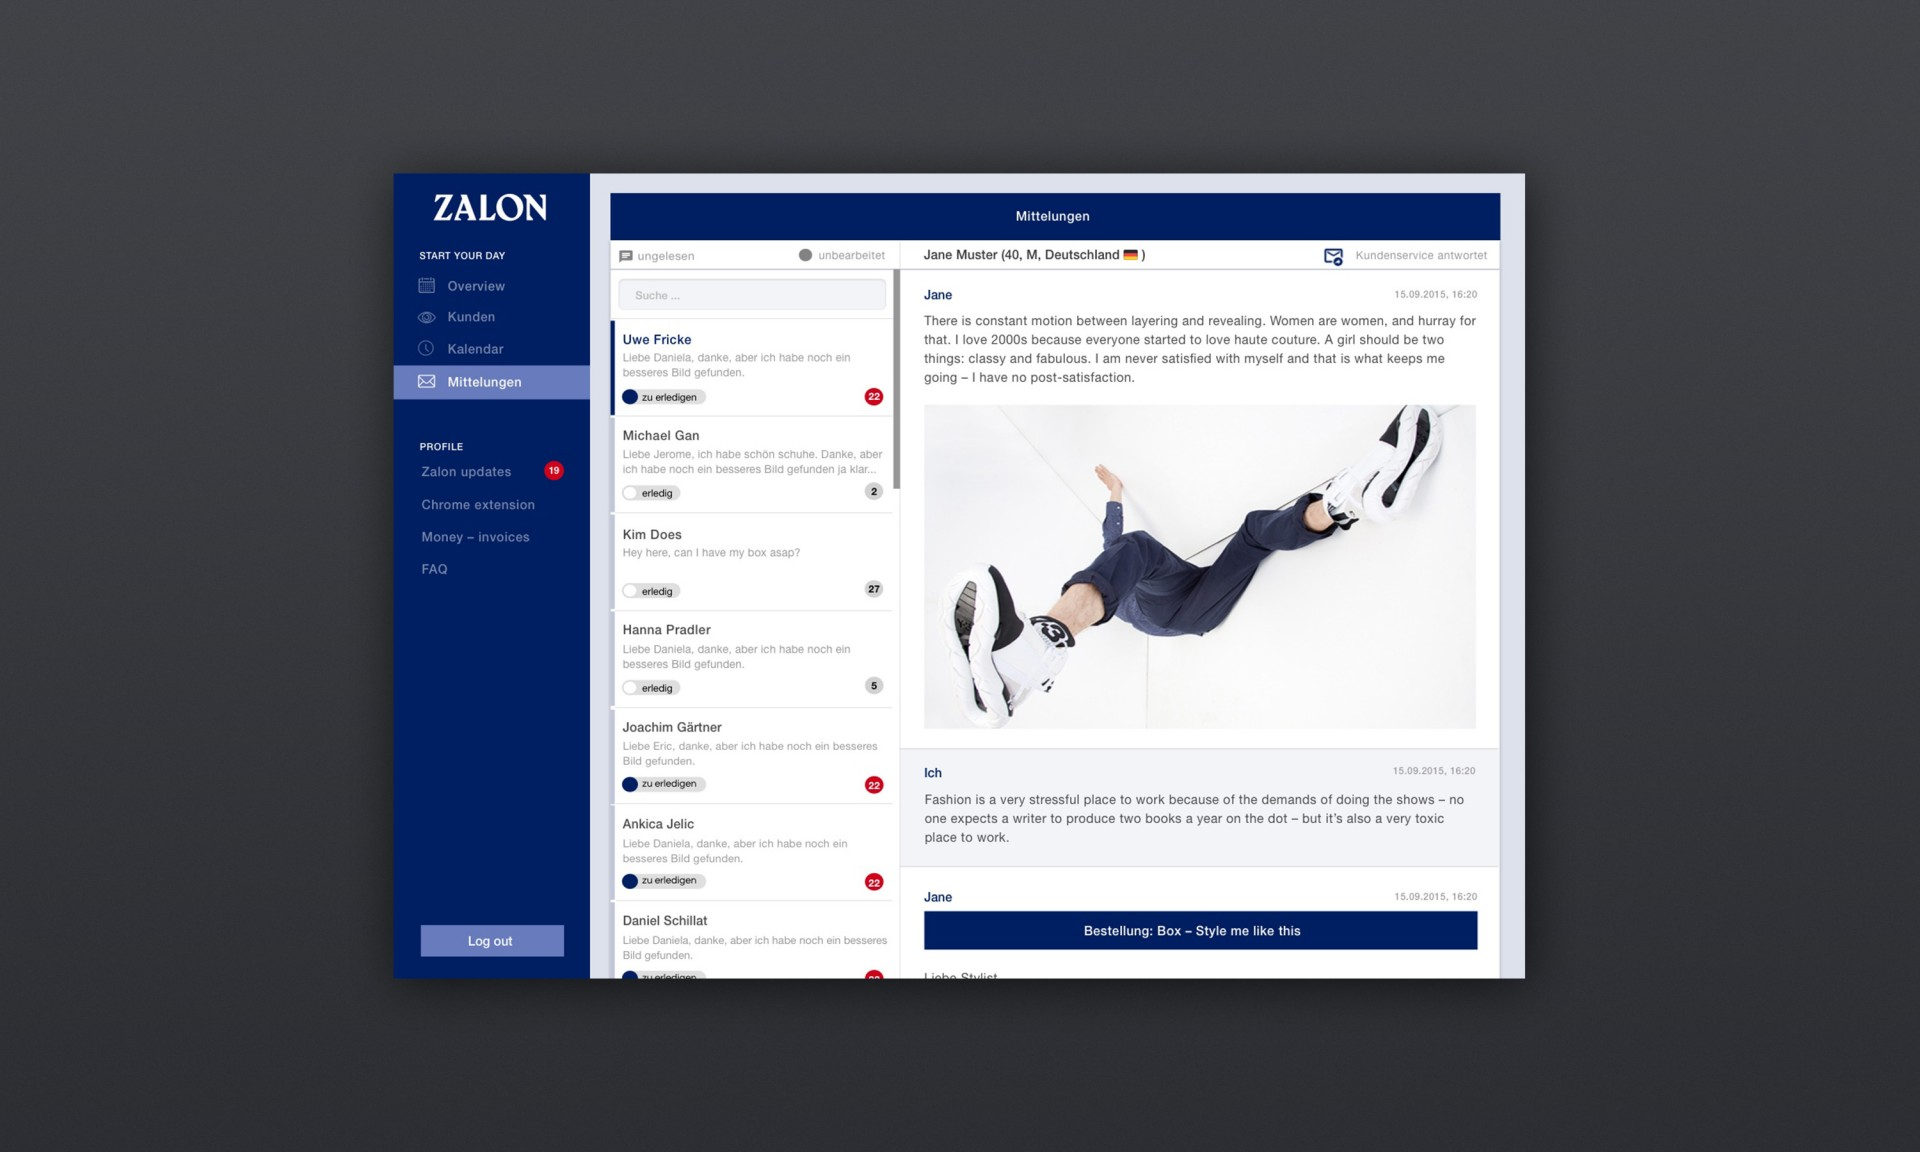 Design & Creative direction Zalon by Zalando